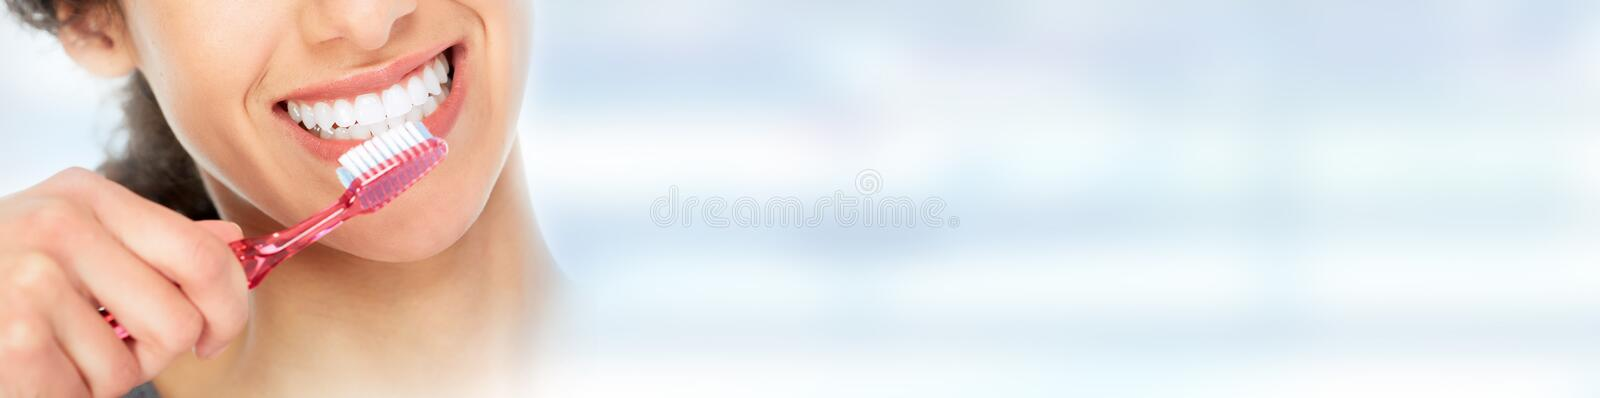 Woman with toothbrush. royalty free stock images